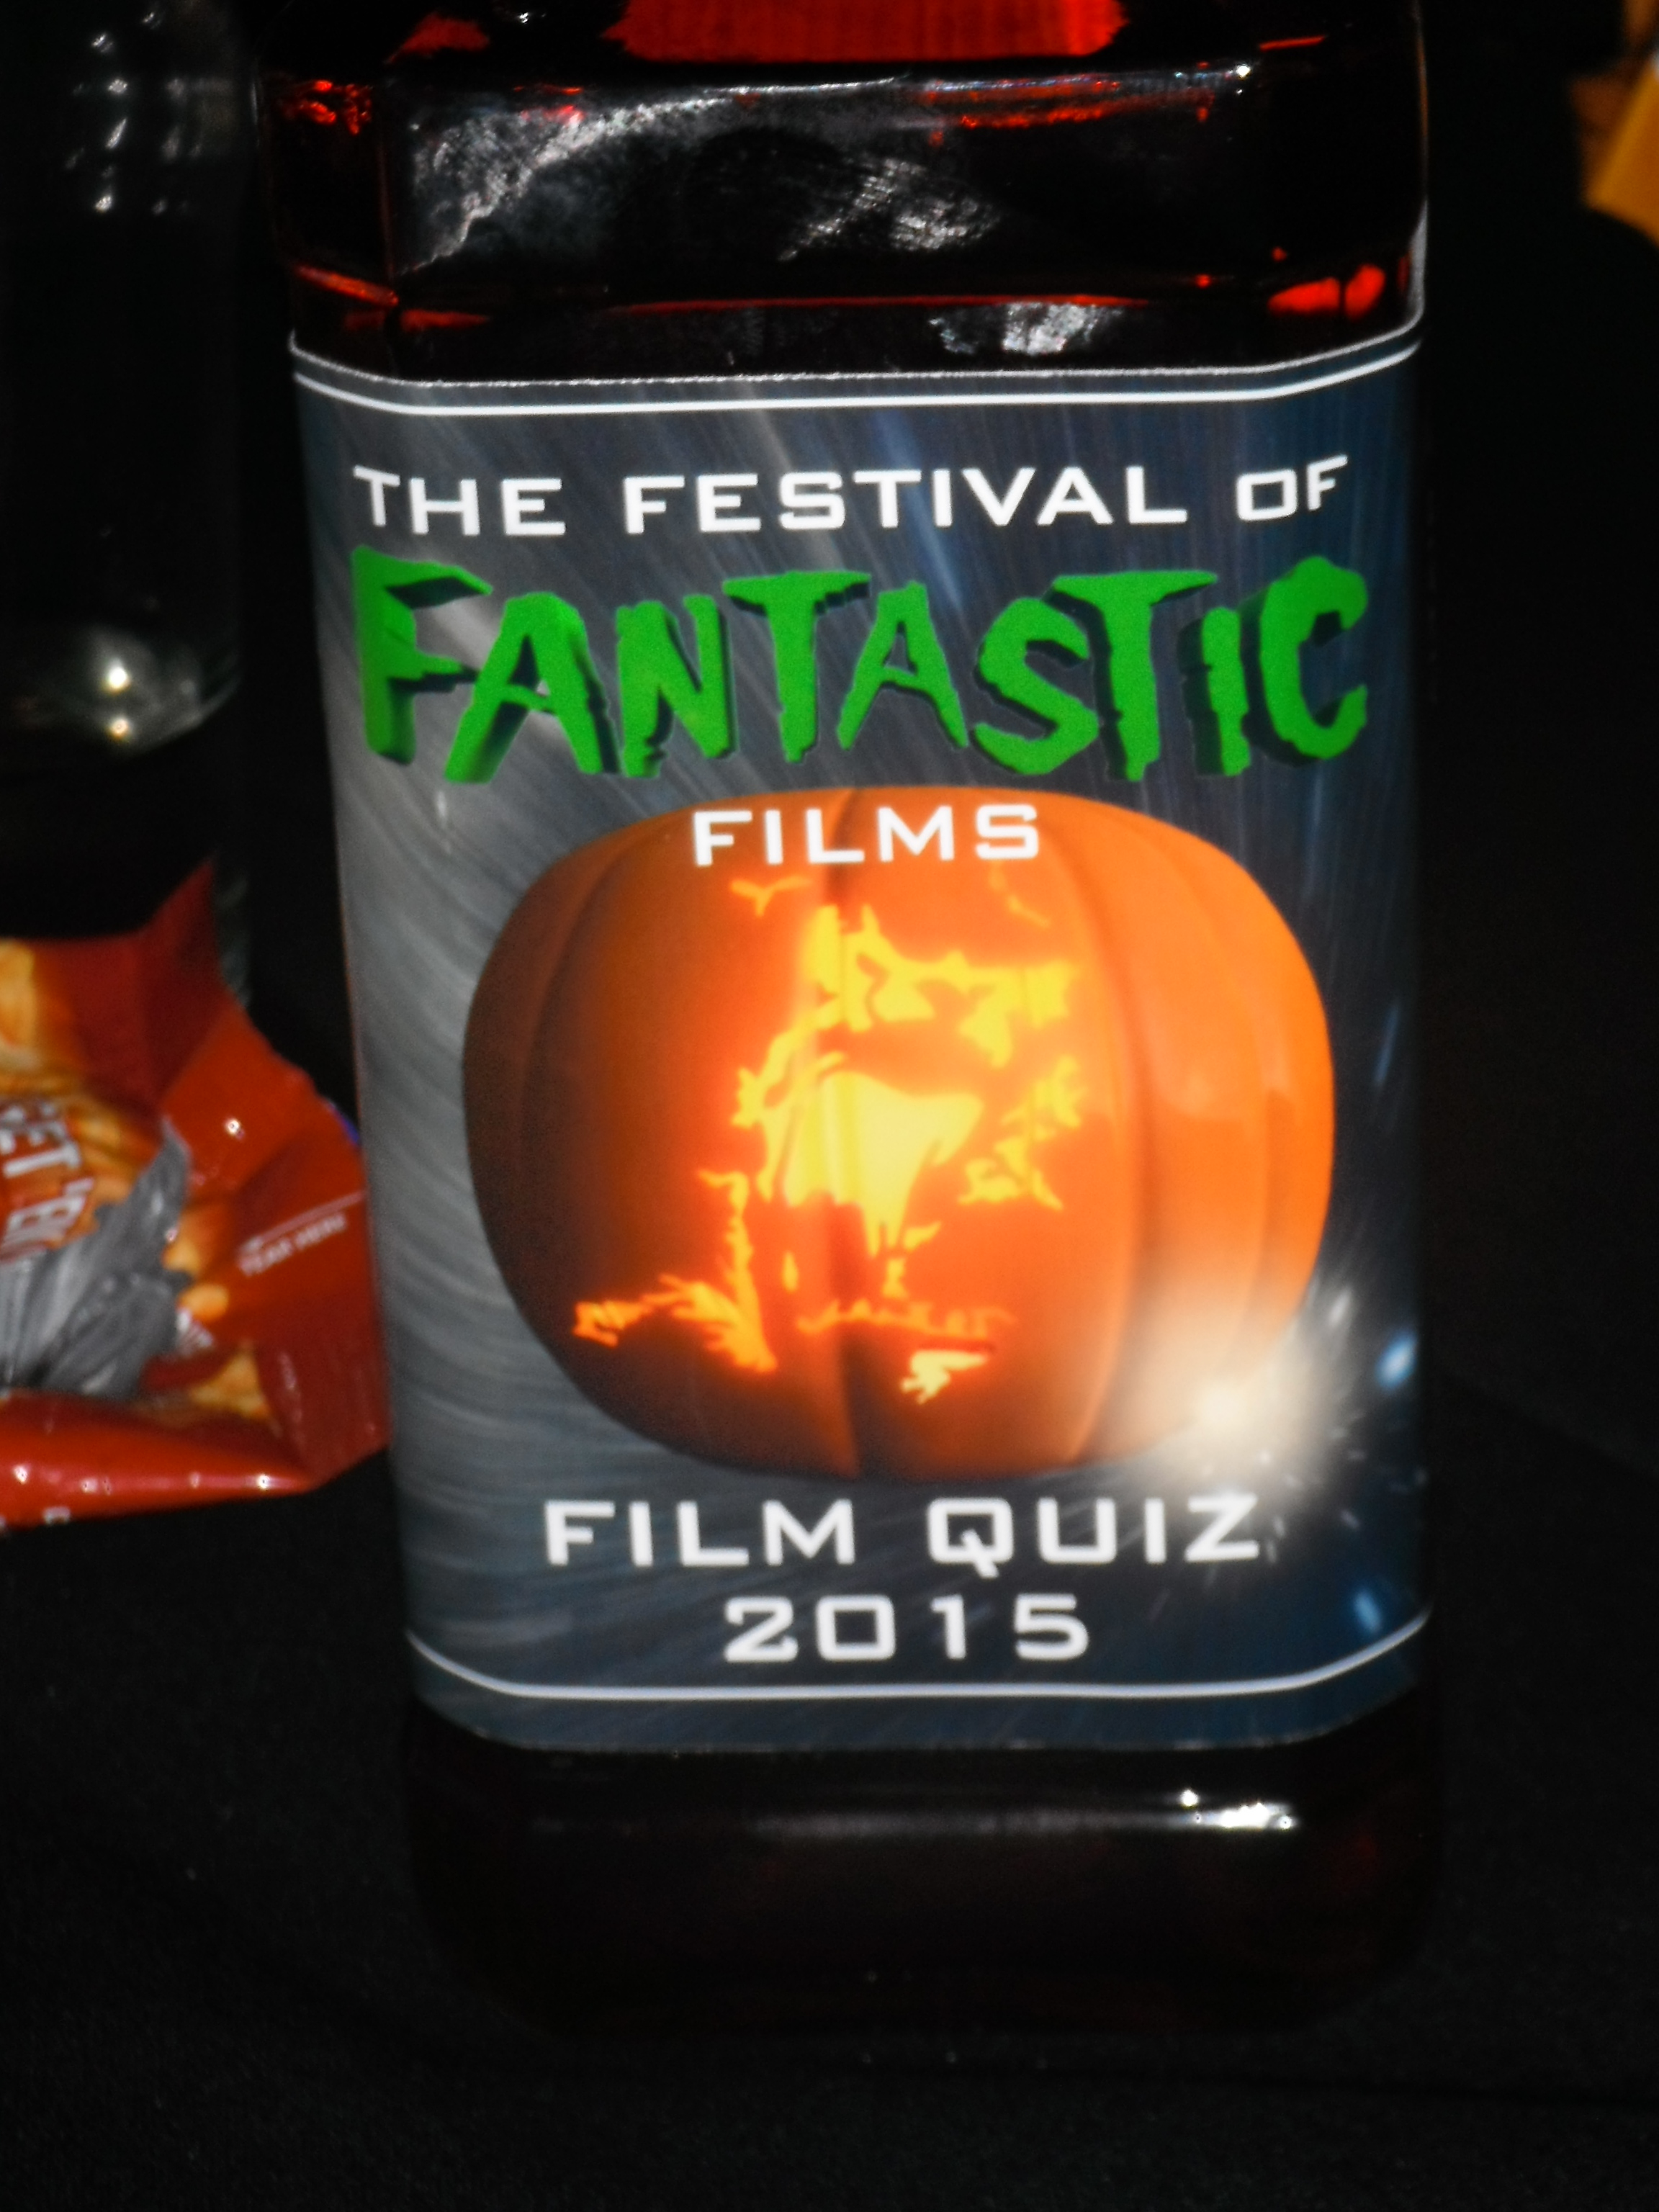 Photo taken by me – Festival Of Fantastic Films 2015 logo.